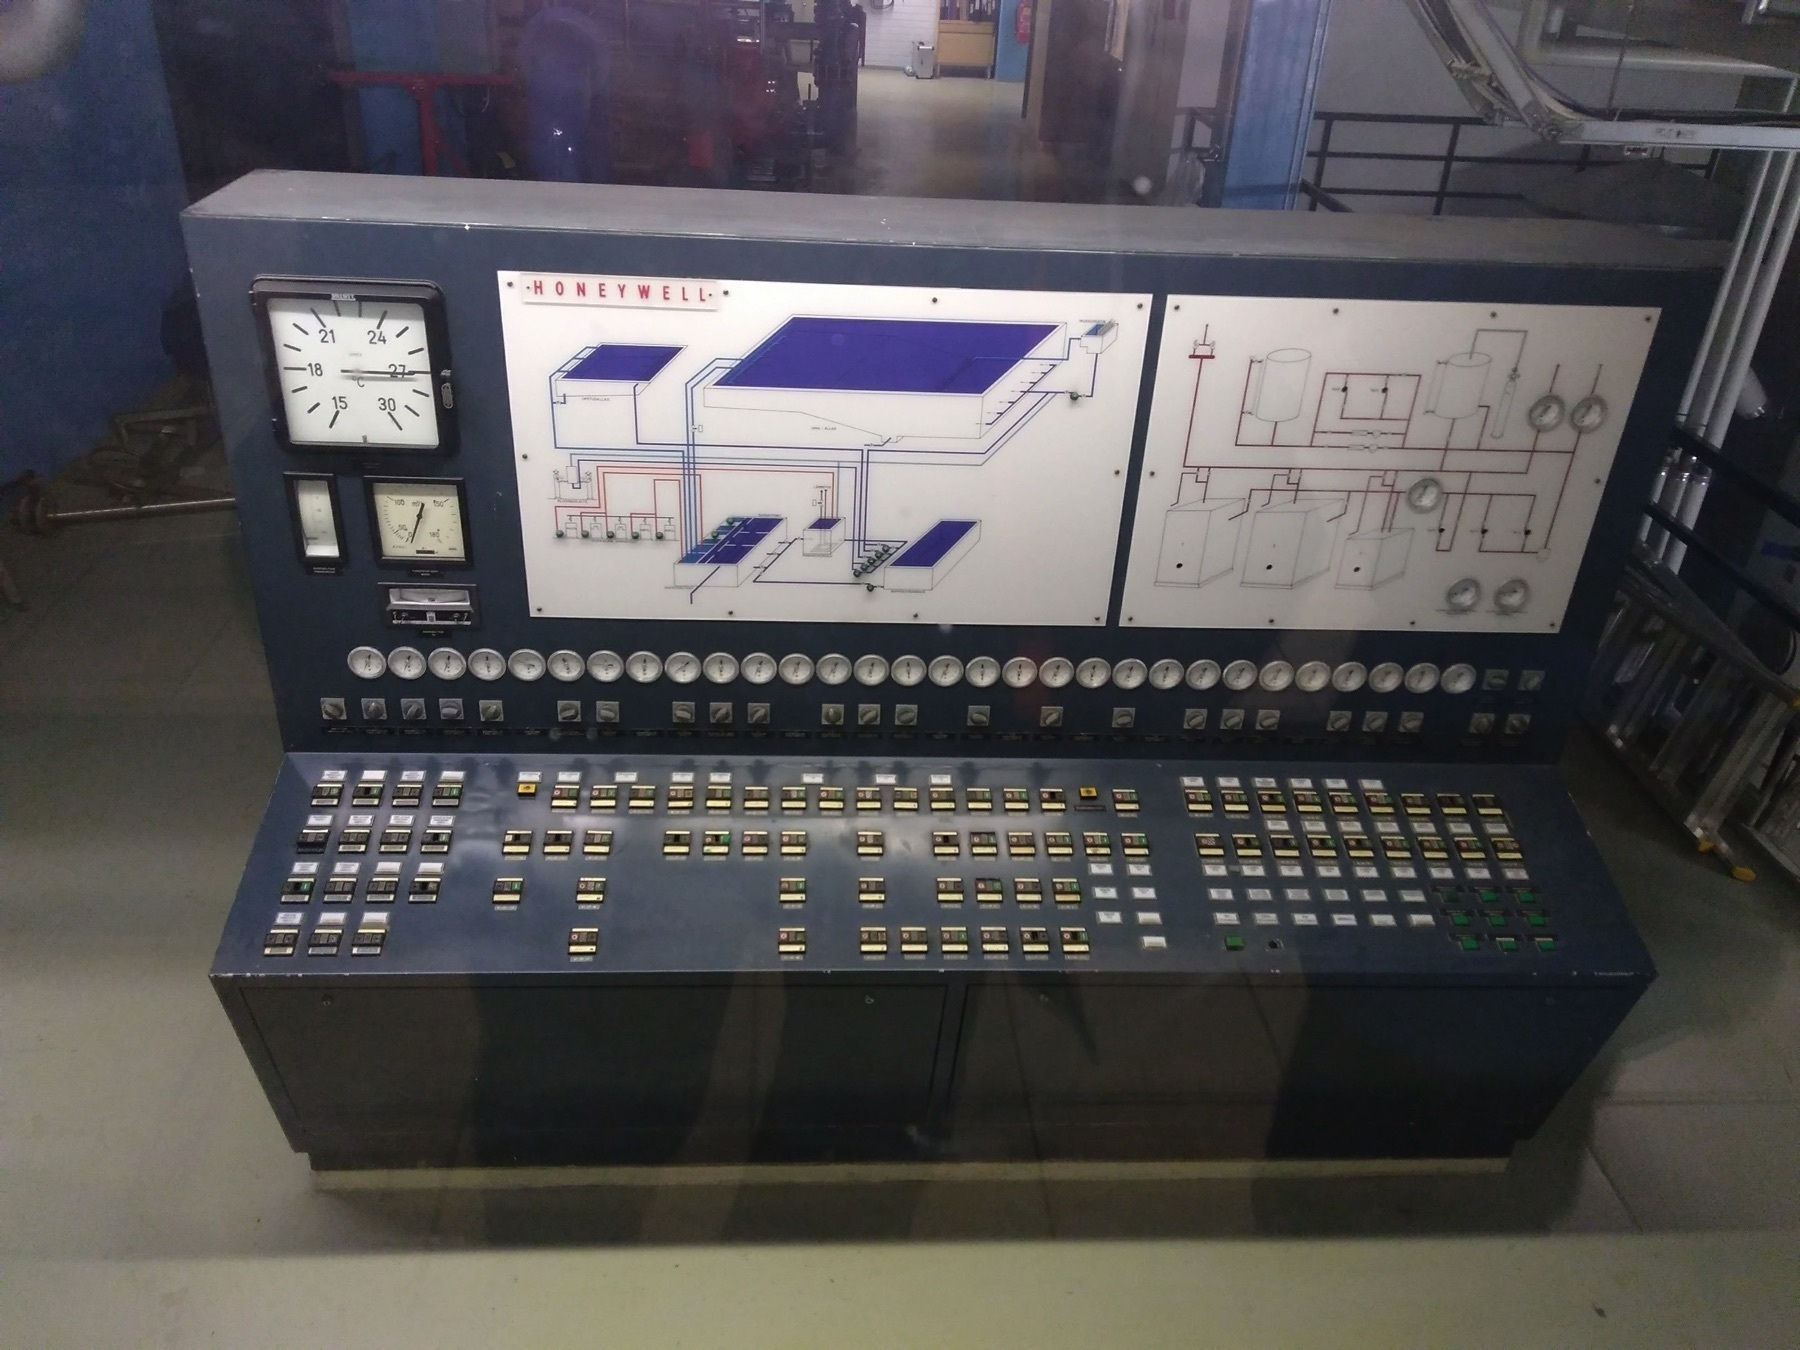 Honeywell branded swimming pool dashboard, dozens of gauges, nobs and an illustration of the pool water circulation